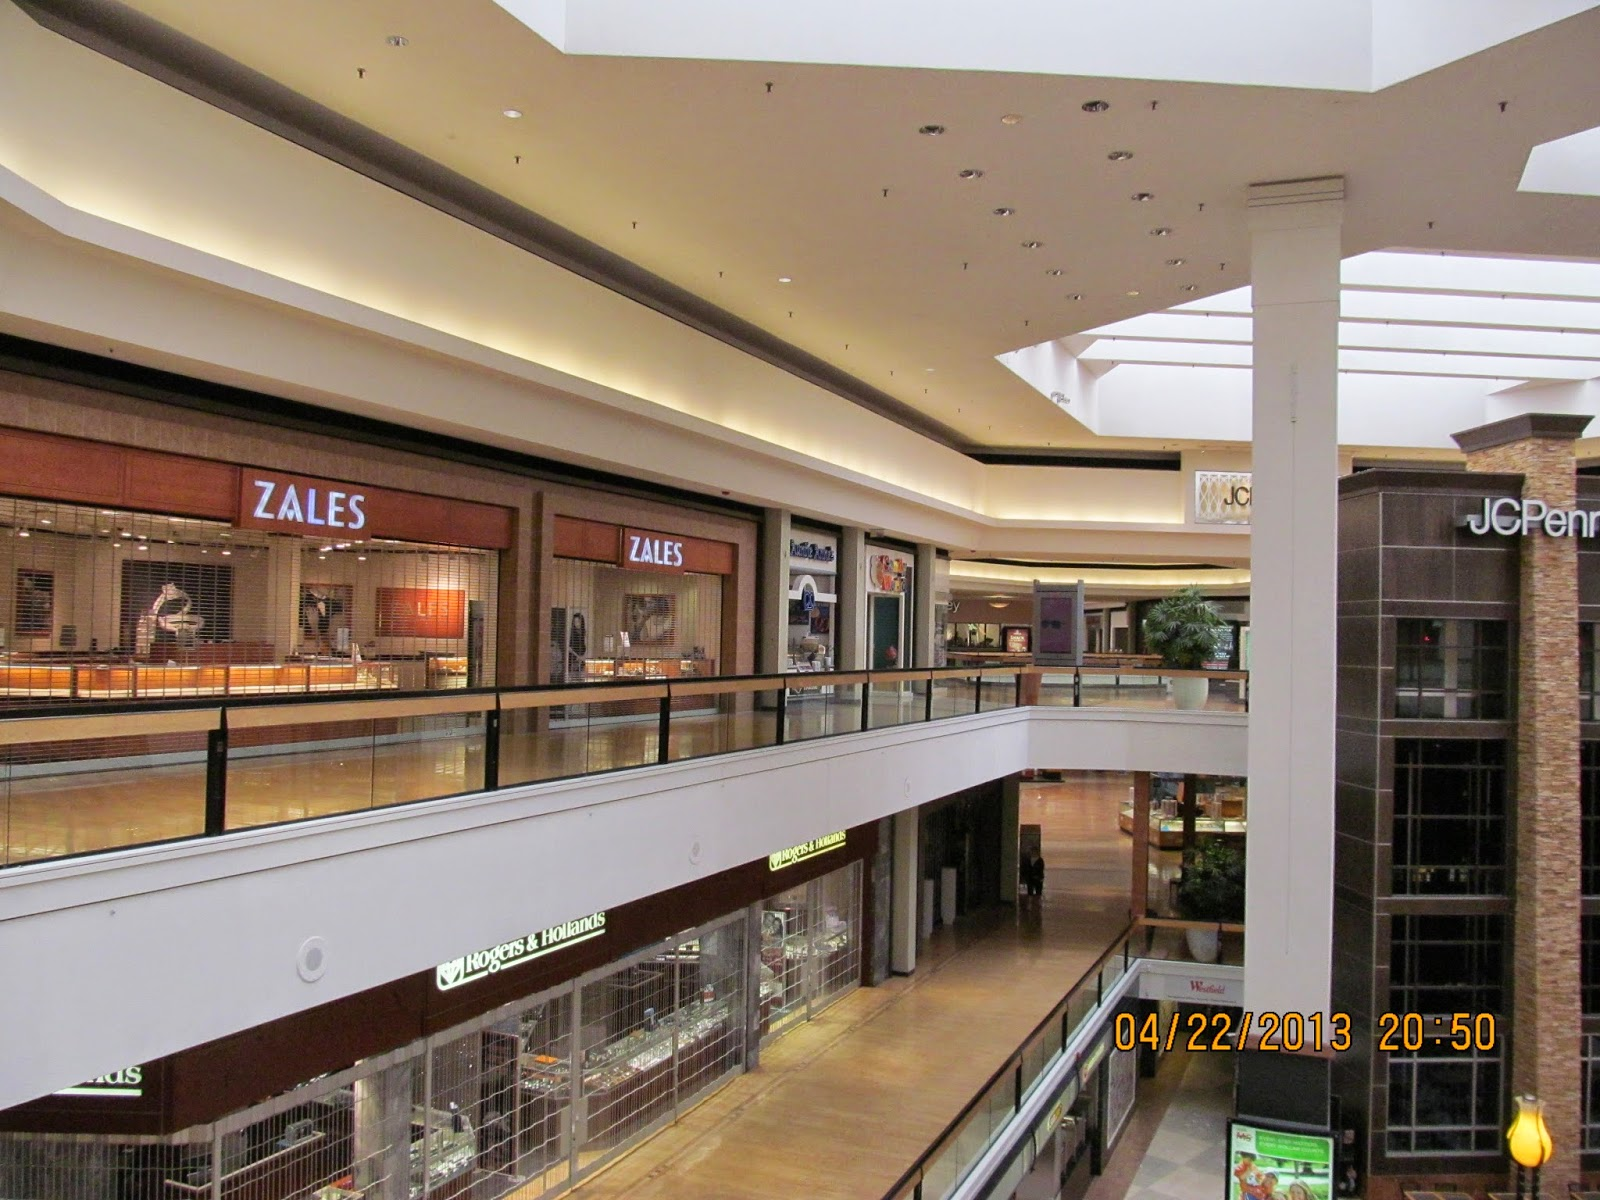 Fox Valley Mall is a staple in our local community. In Chicagoland there are no shortage of retail options but this mall is always a reliable source for the latest in fashion!6/10(25).